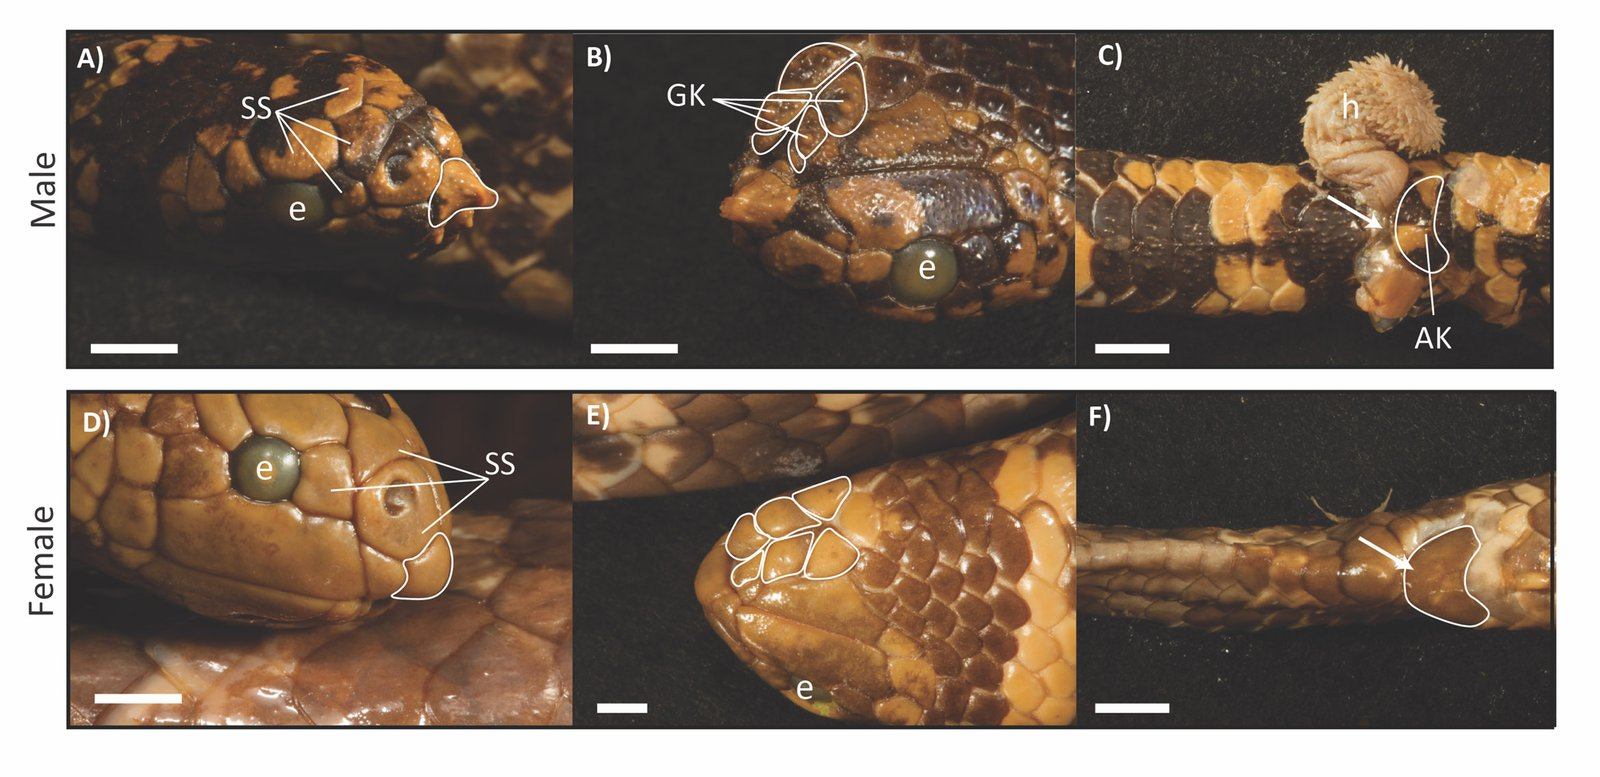 Comparison of male and female turtle-headed sea snakes. Males have A) a rostral spine, B) enlarged genial knobs (GK), and C) anal knobs (AK). Males also have A) larger scale receptors (SS). H = hemipene, which is a male reproductive organ